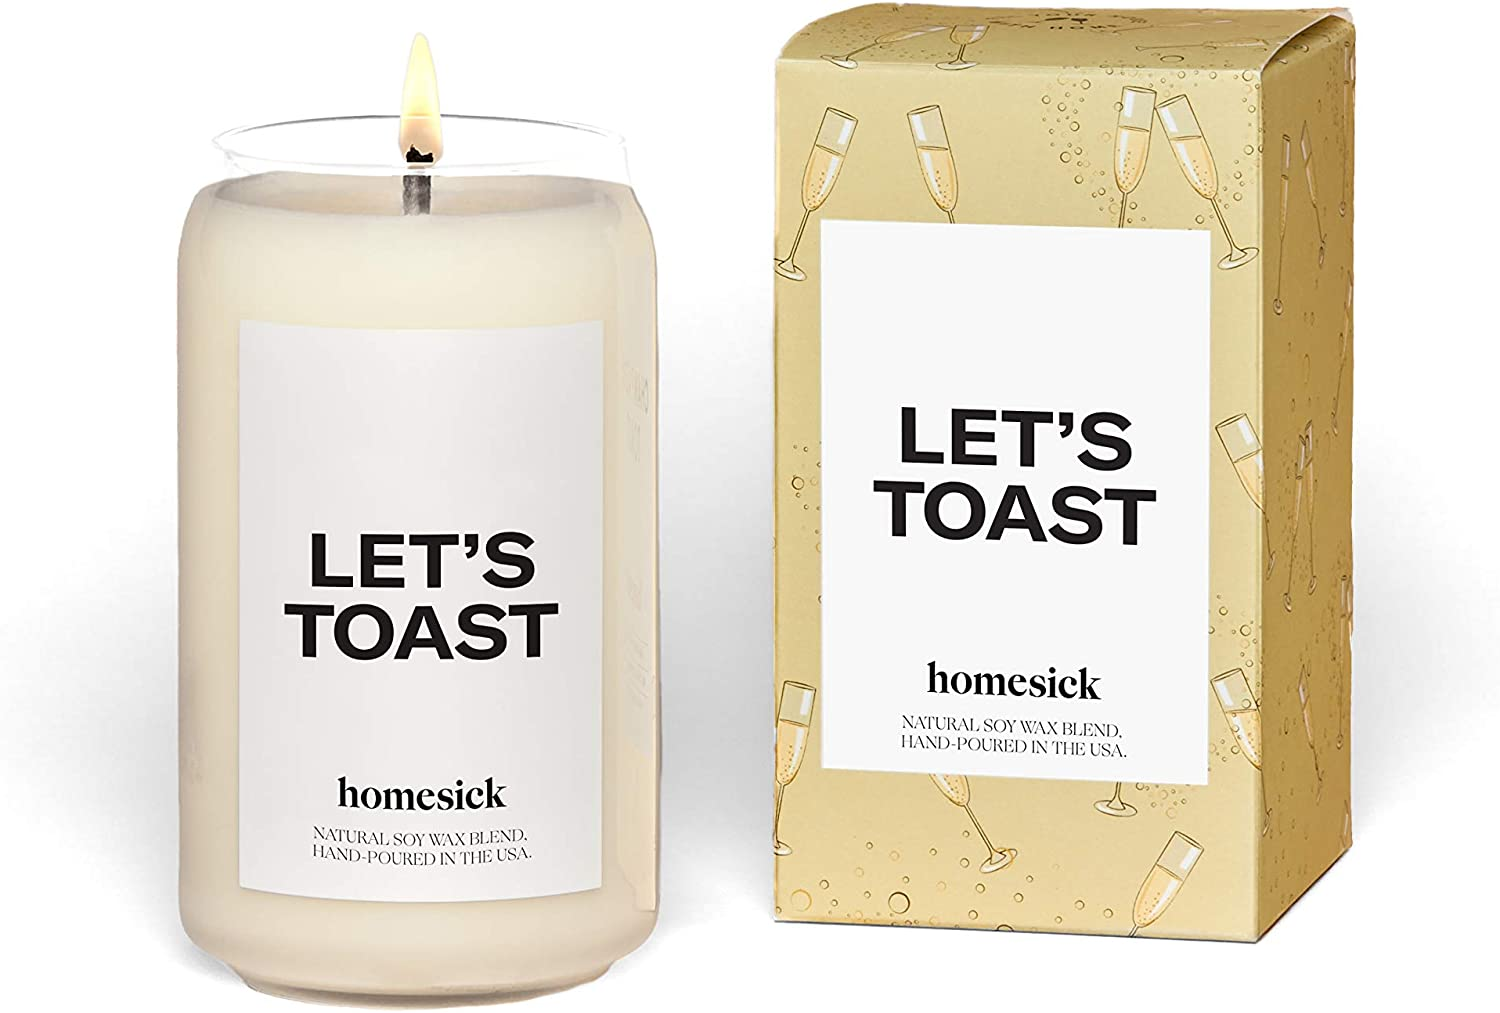 Homesick Scented Candle, Let's Toast, 13.75 oz